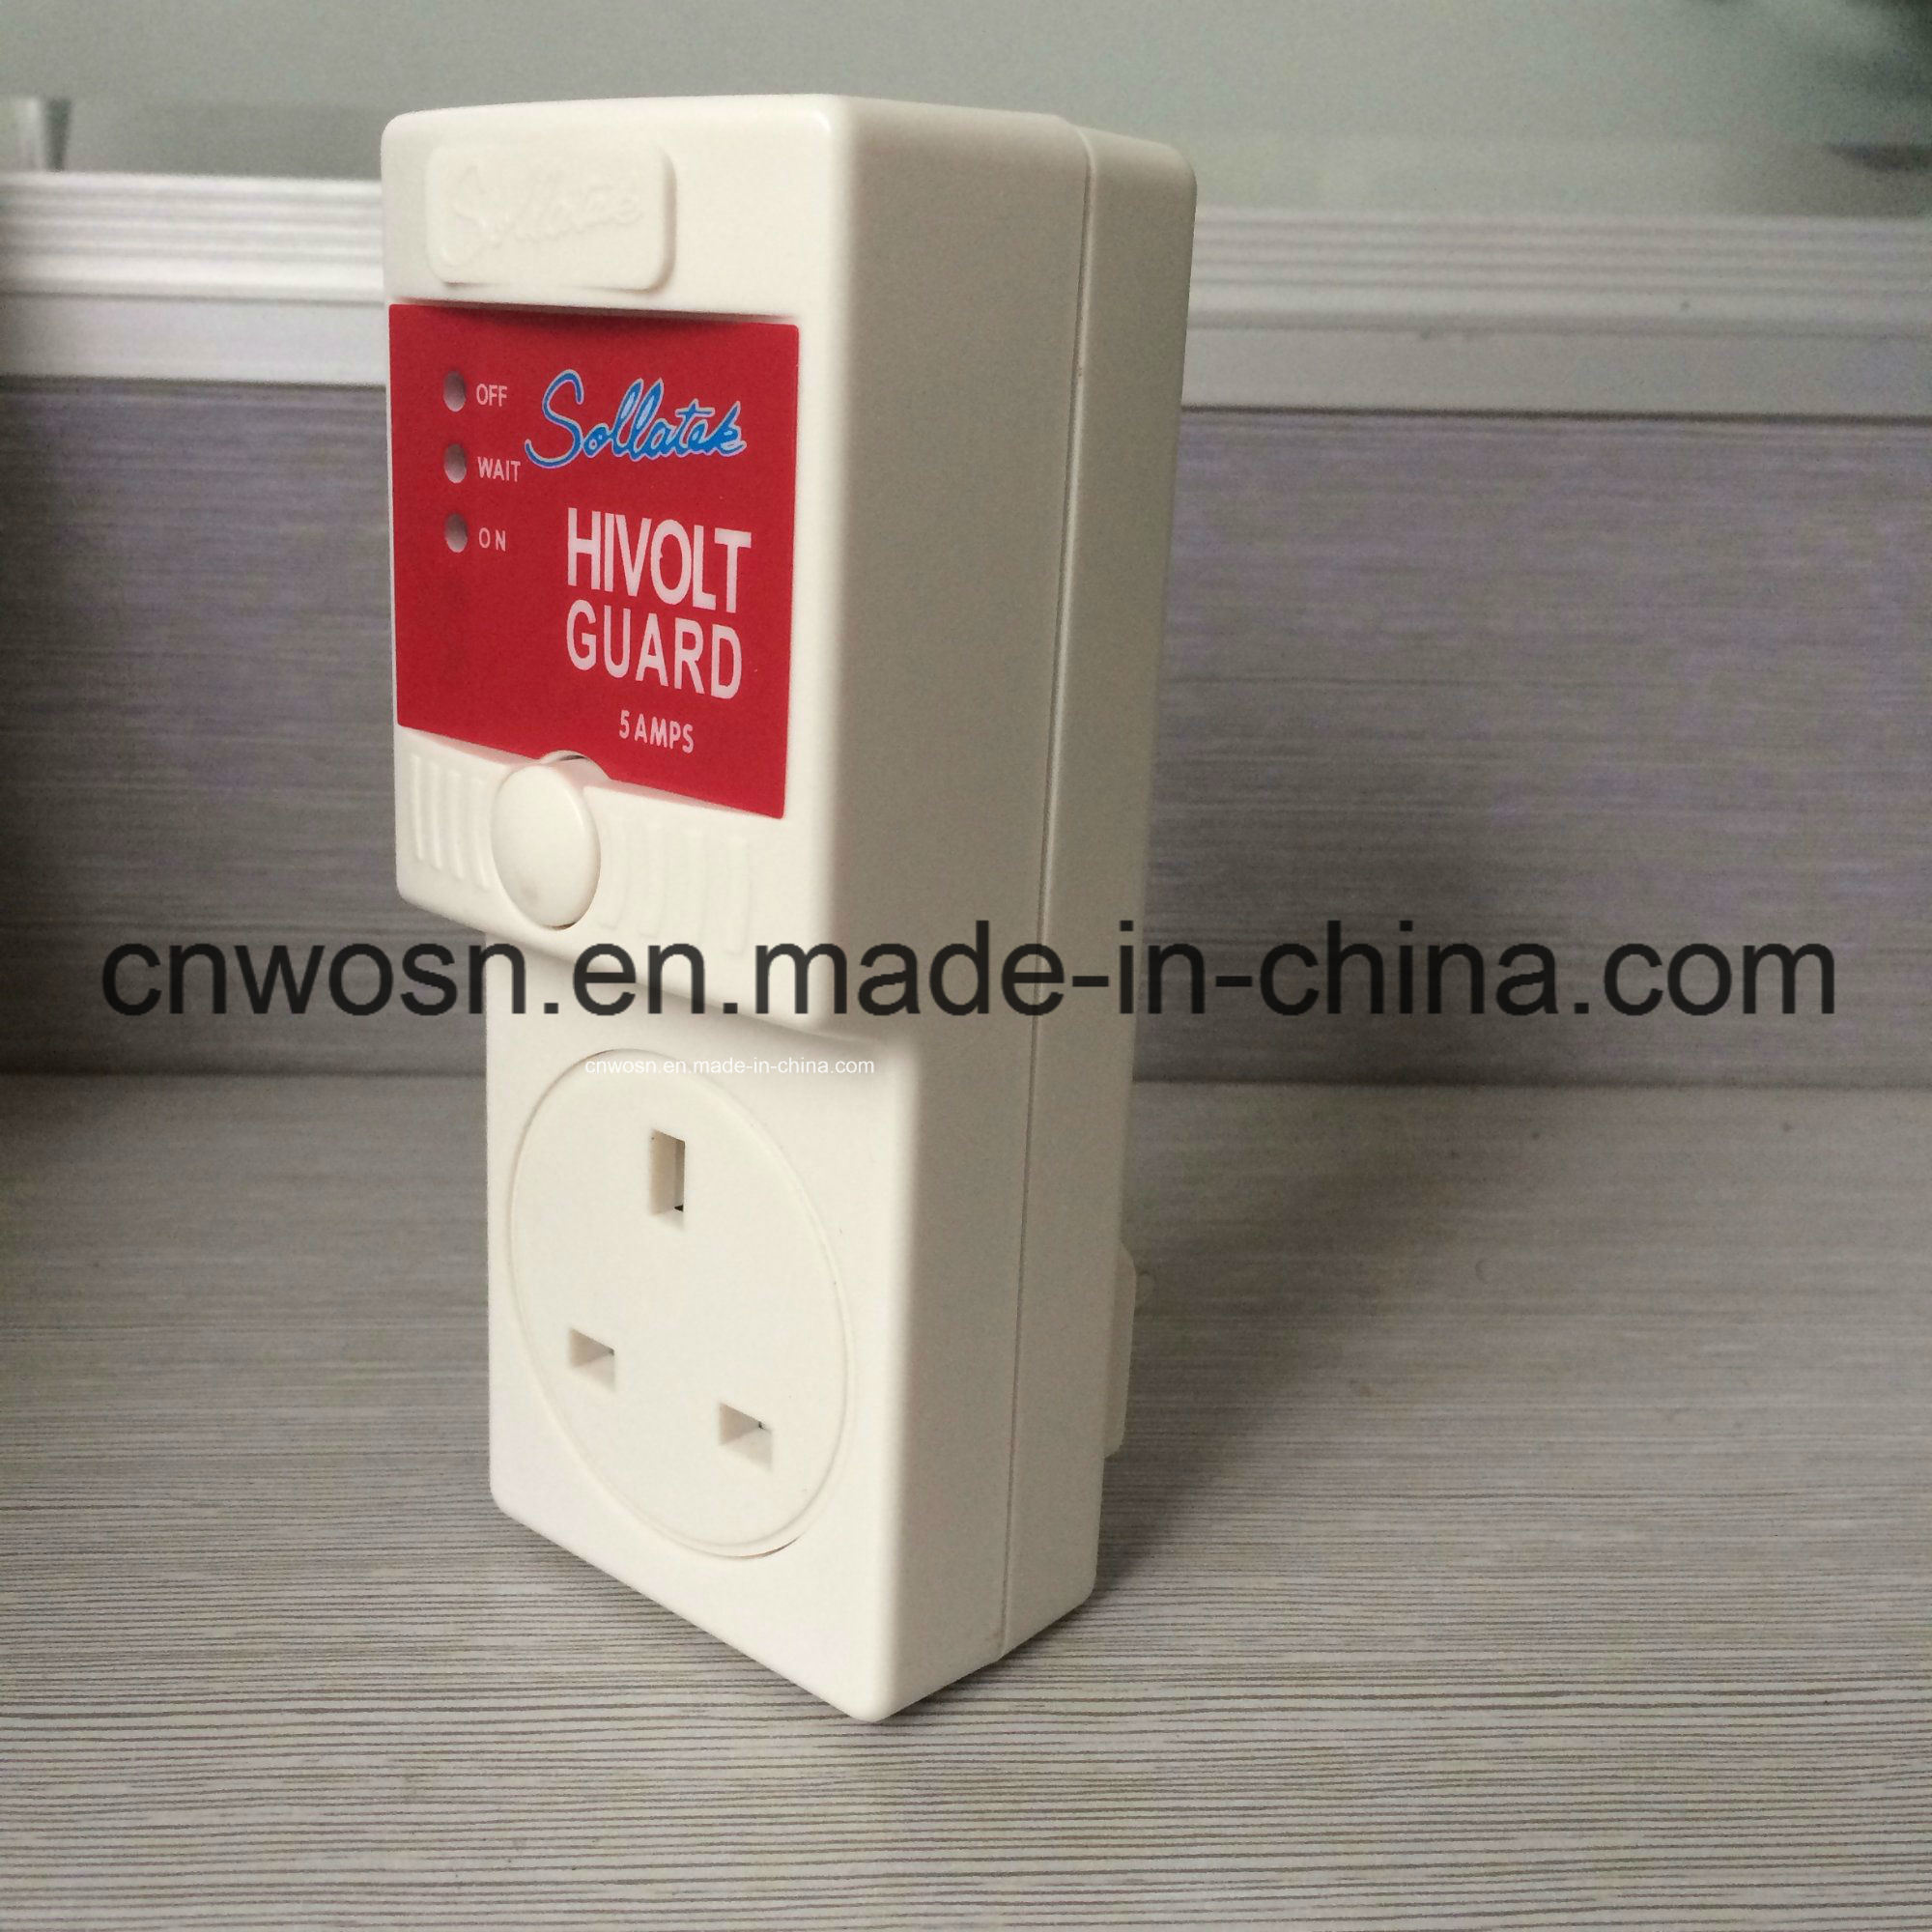 Customize Optional Socket Hivolt Guard AVS 5A Voltage Protector